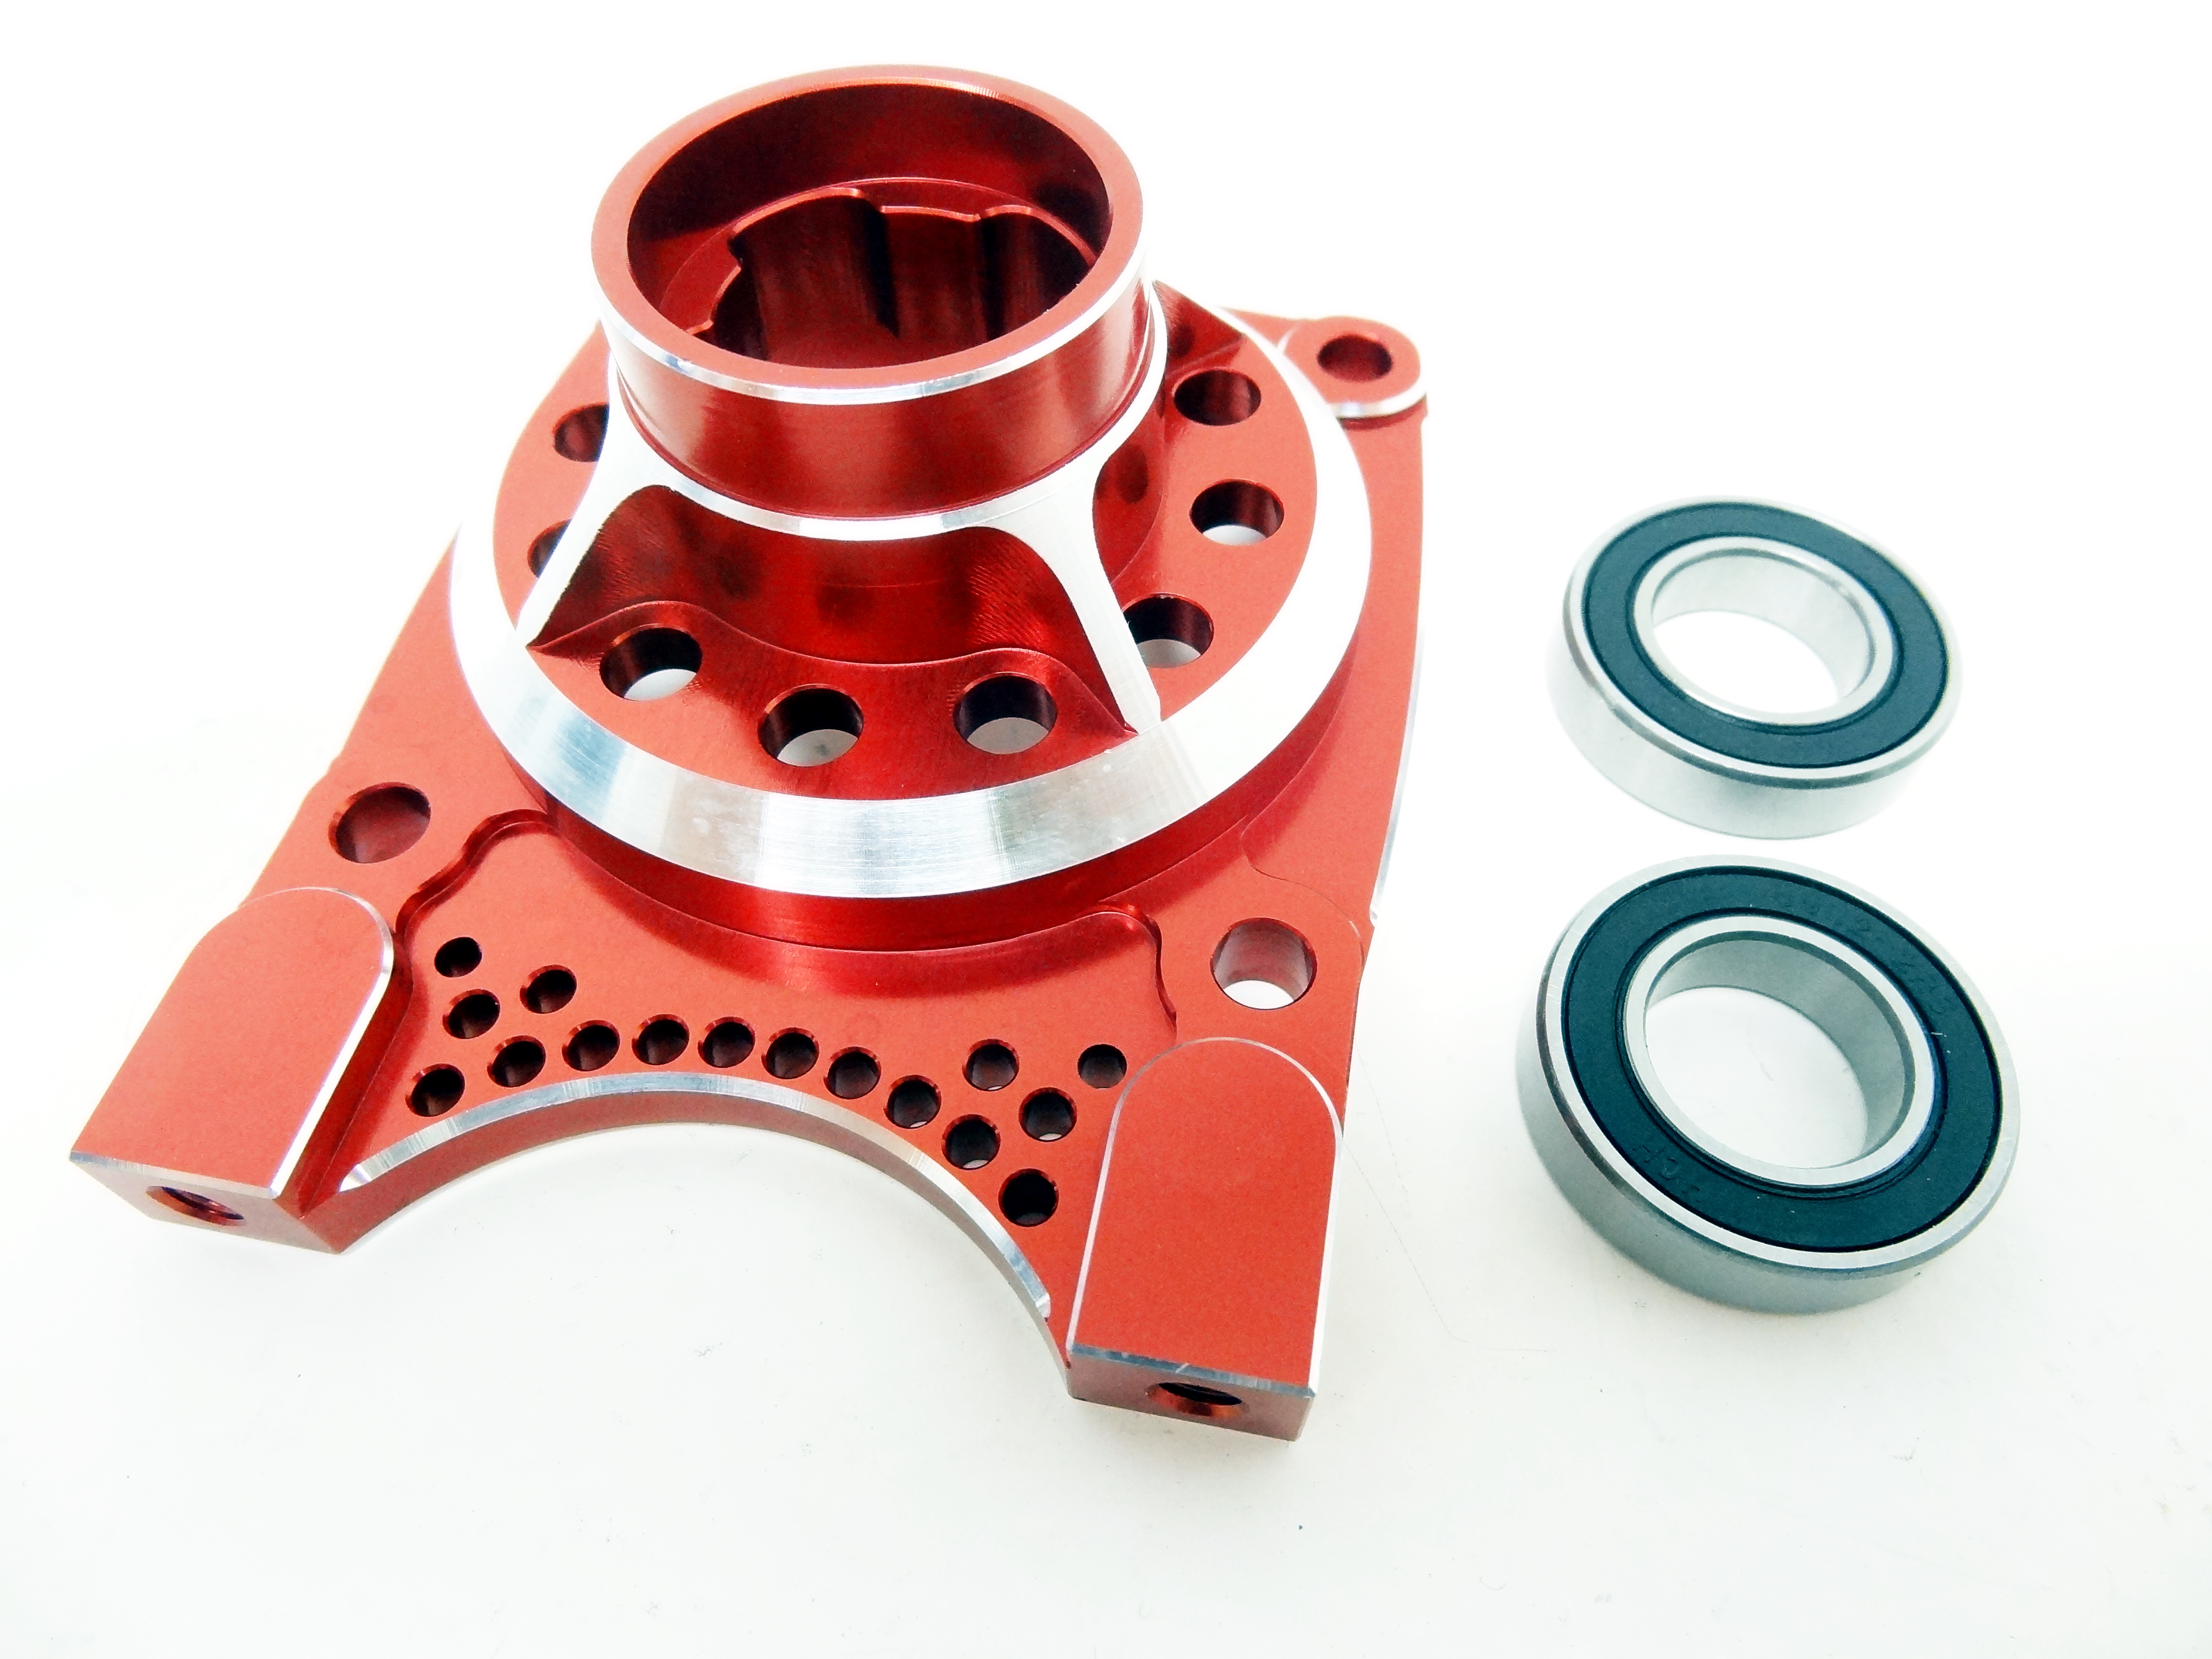 X2 CNC Aluminum Vented Clutch Housing (red)